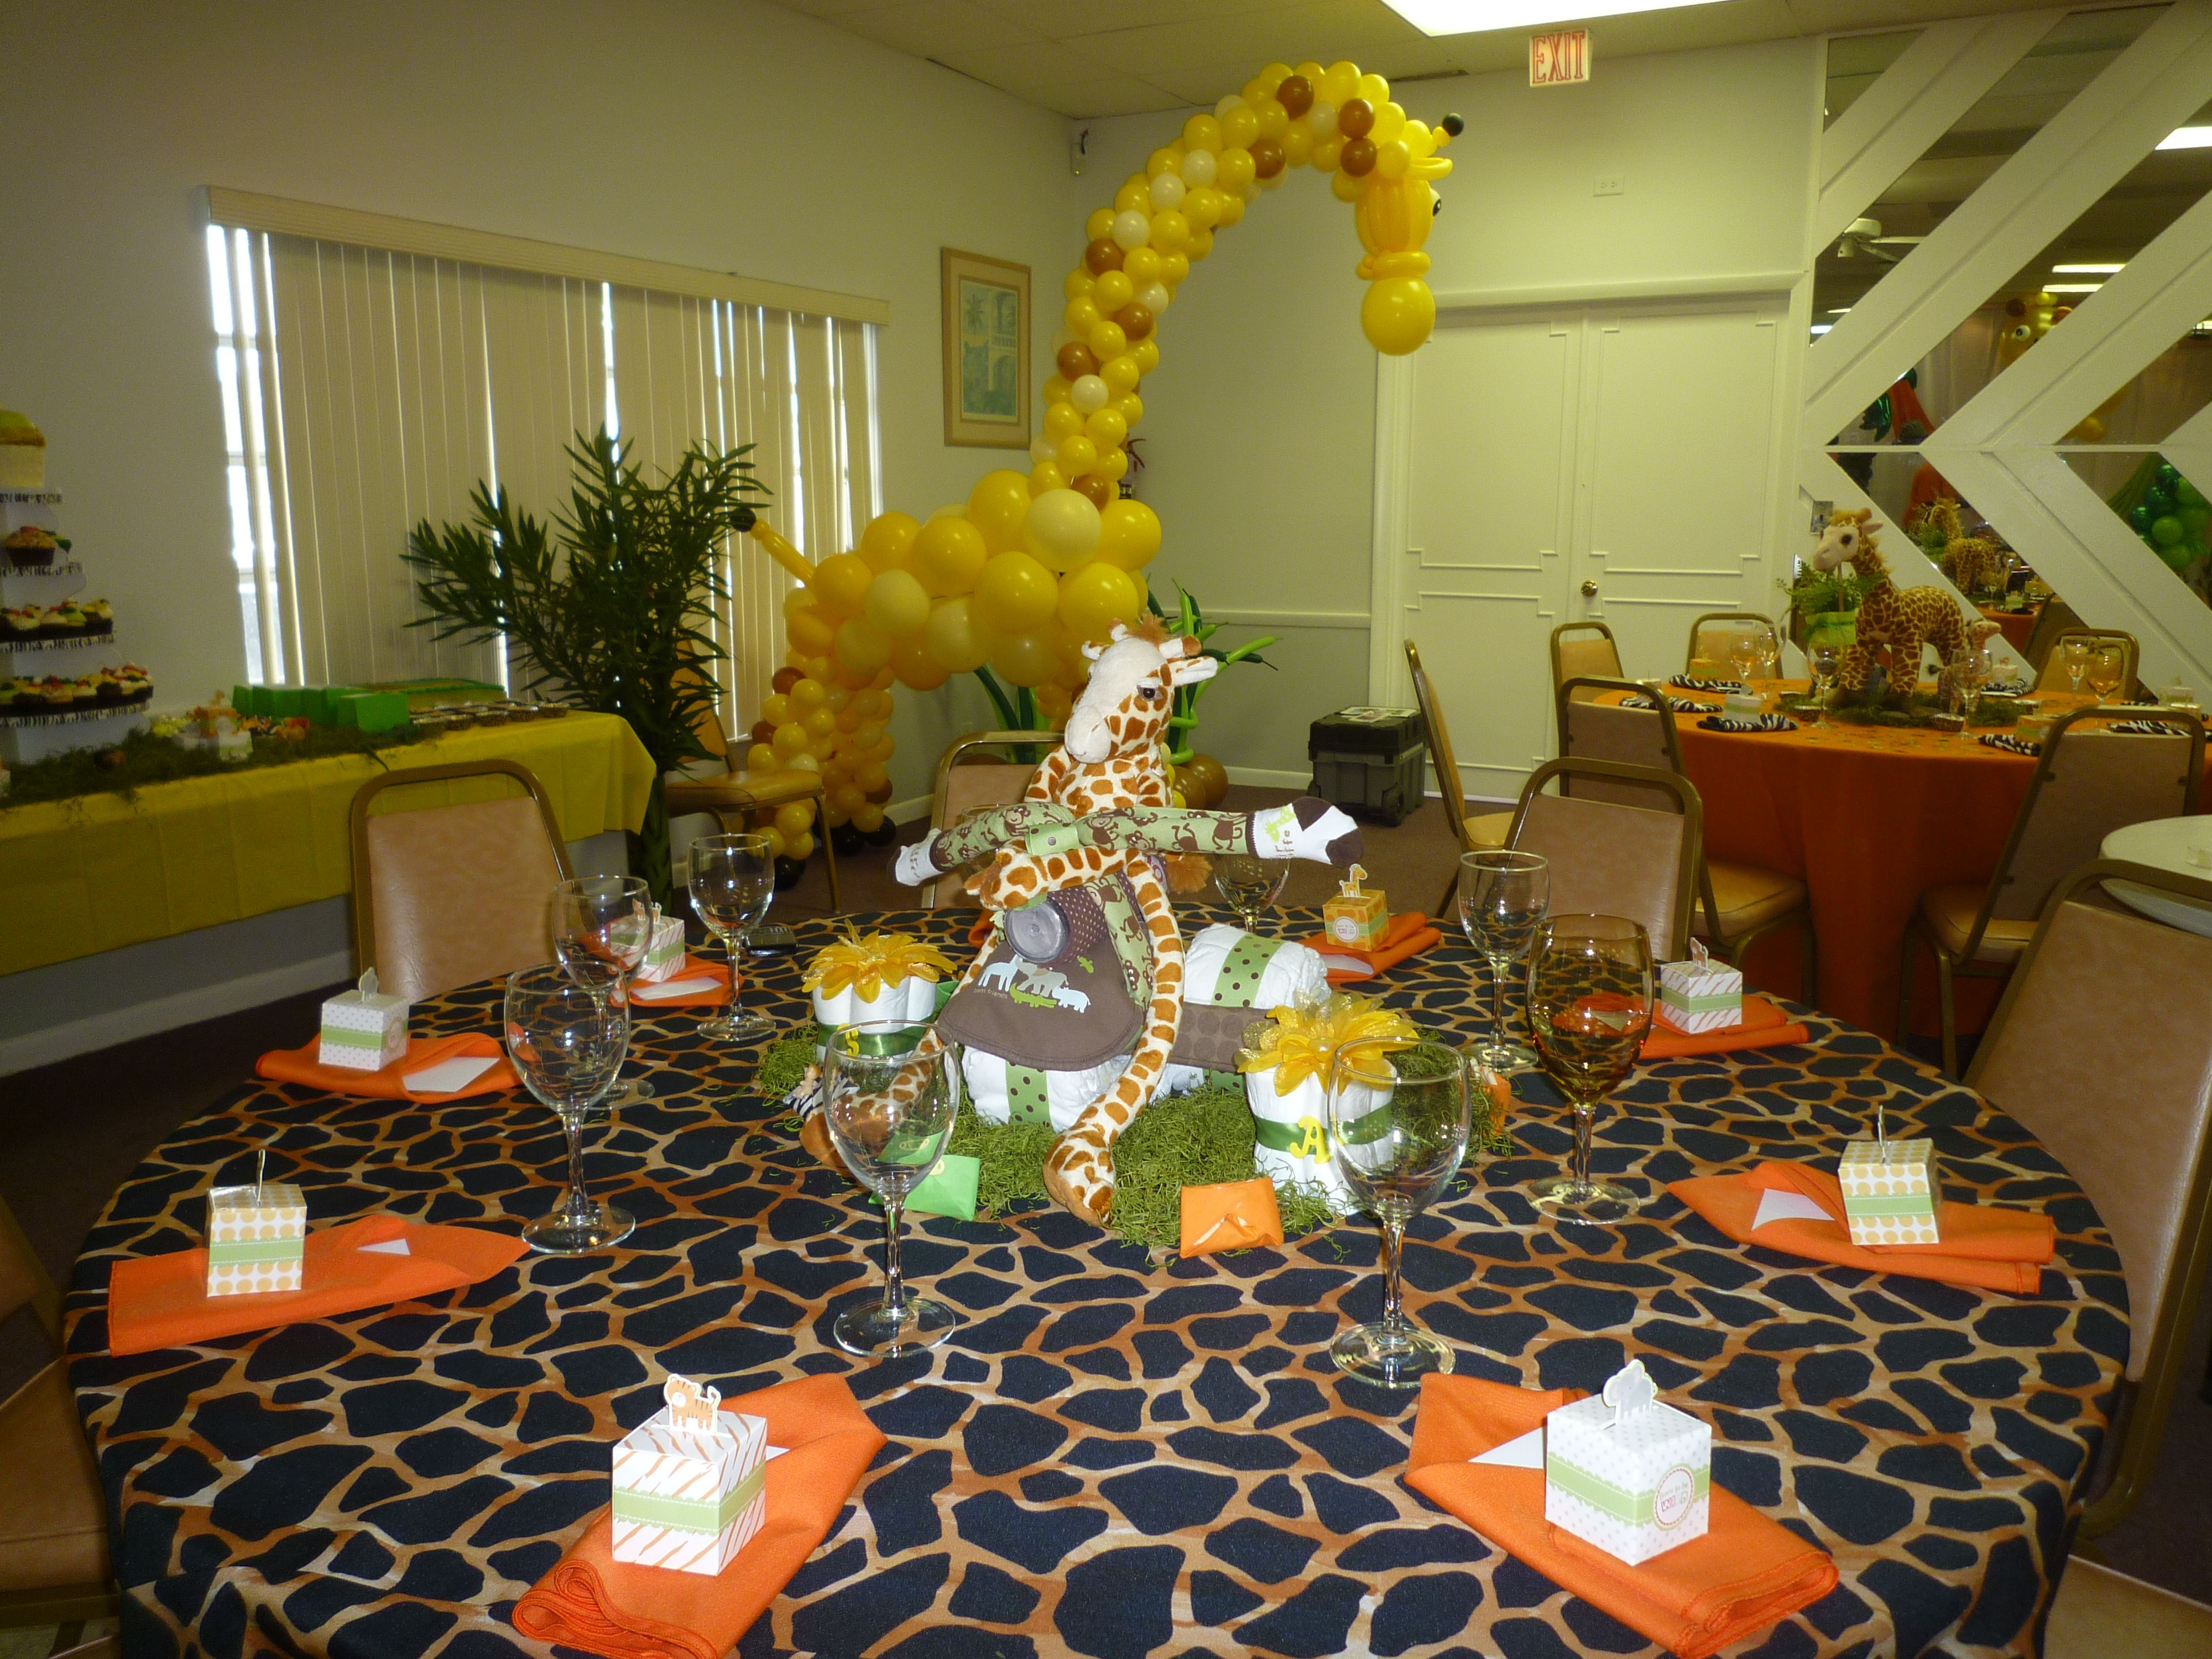 Perfect Baby Shower Centerpiece. Giraffe Balloon Sculpture For Baby Shower Party  Entrance Decoration. Http: